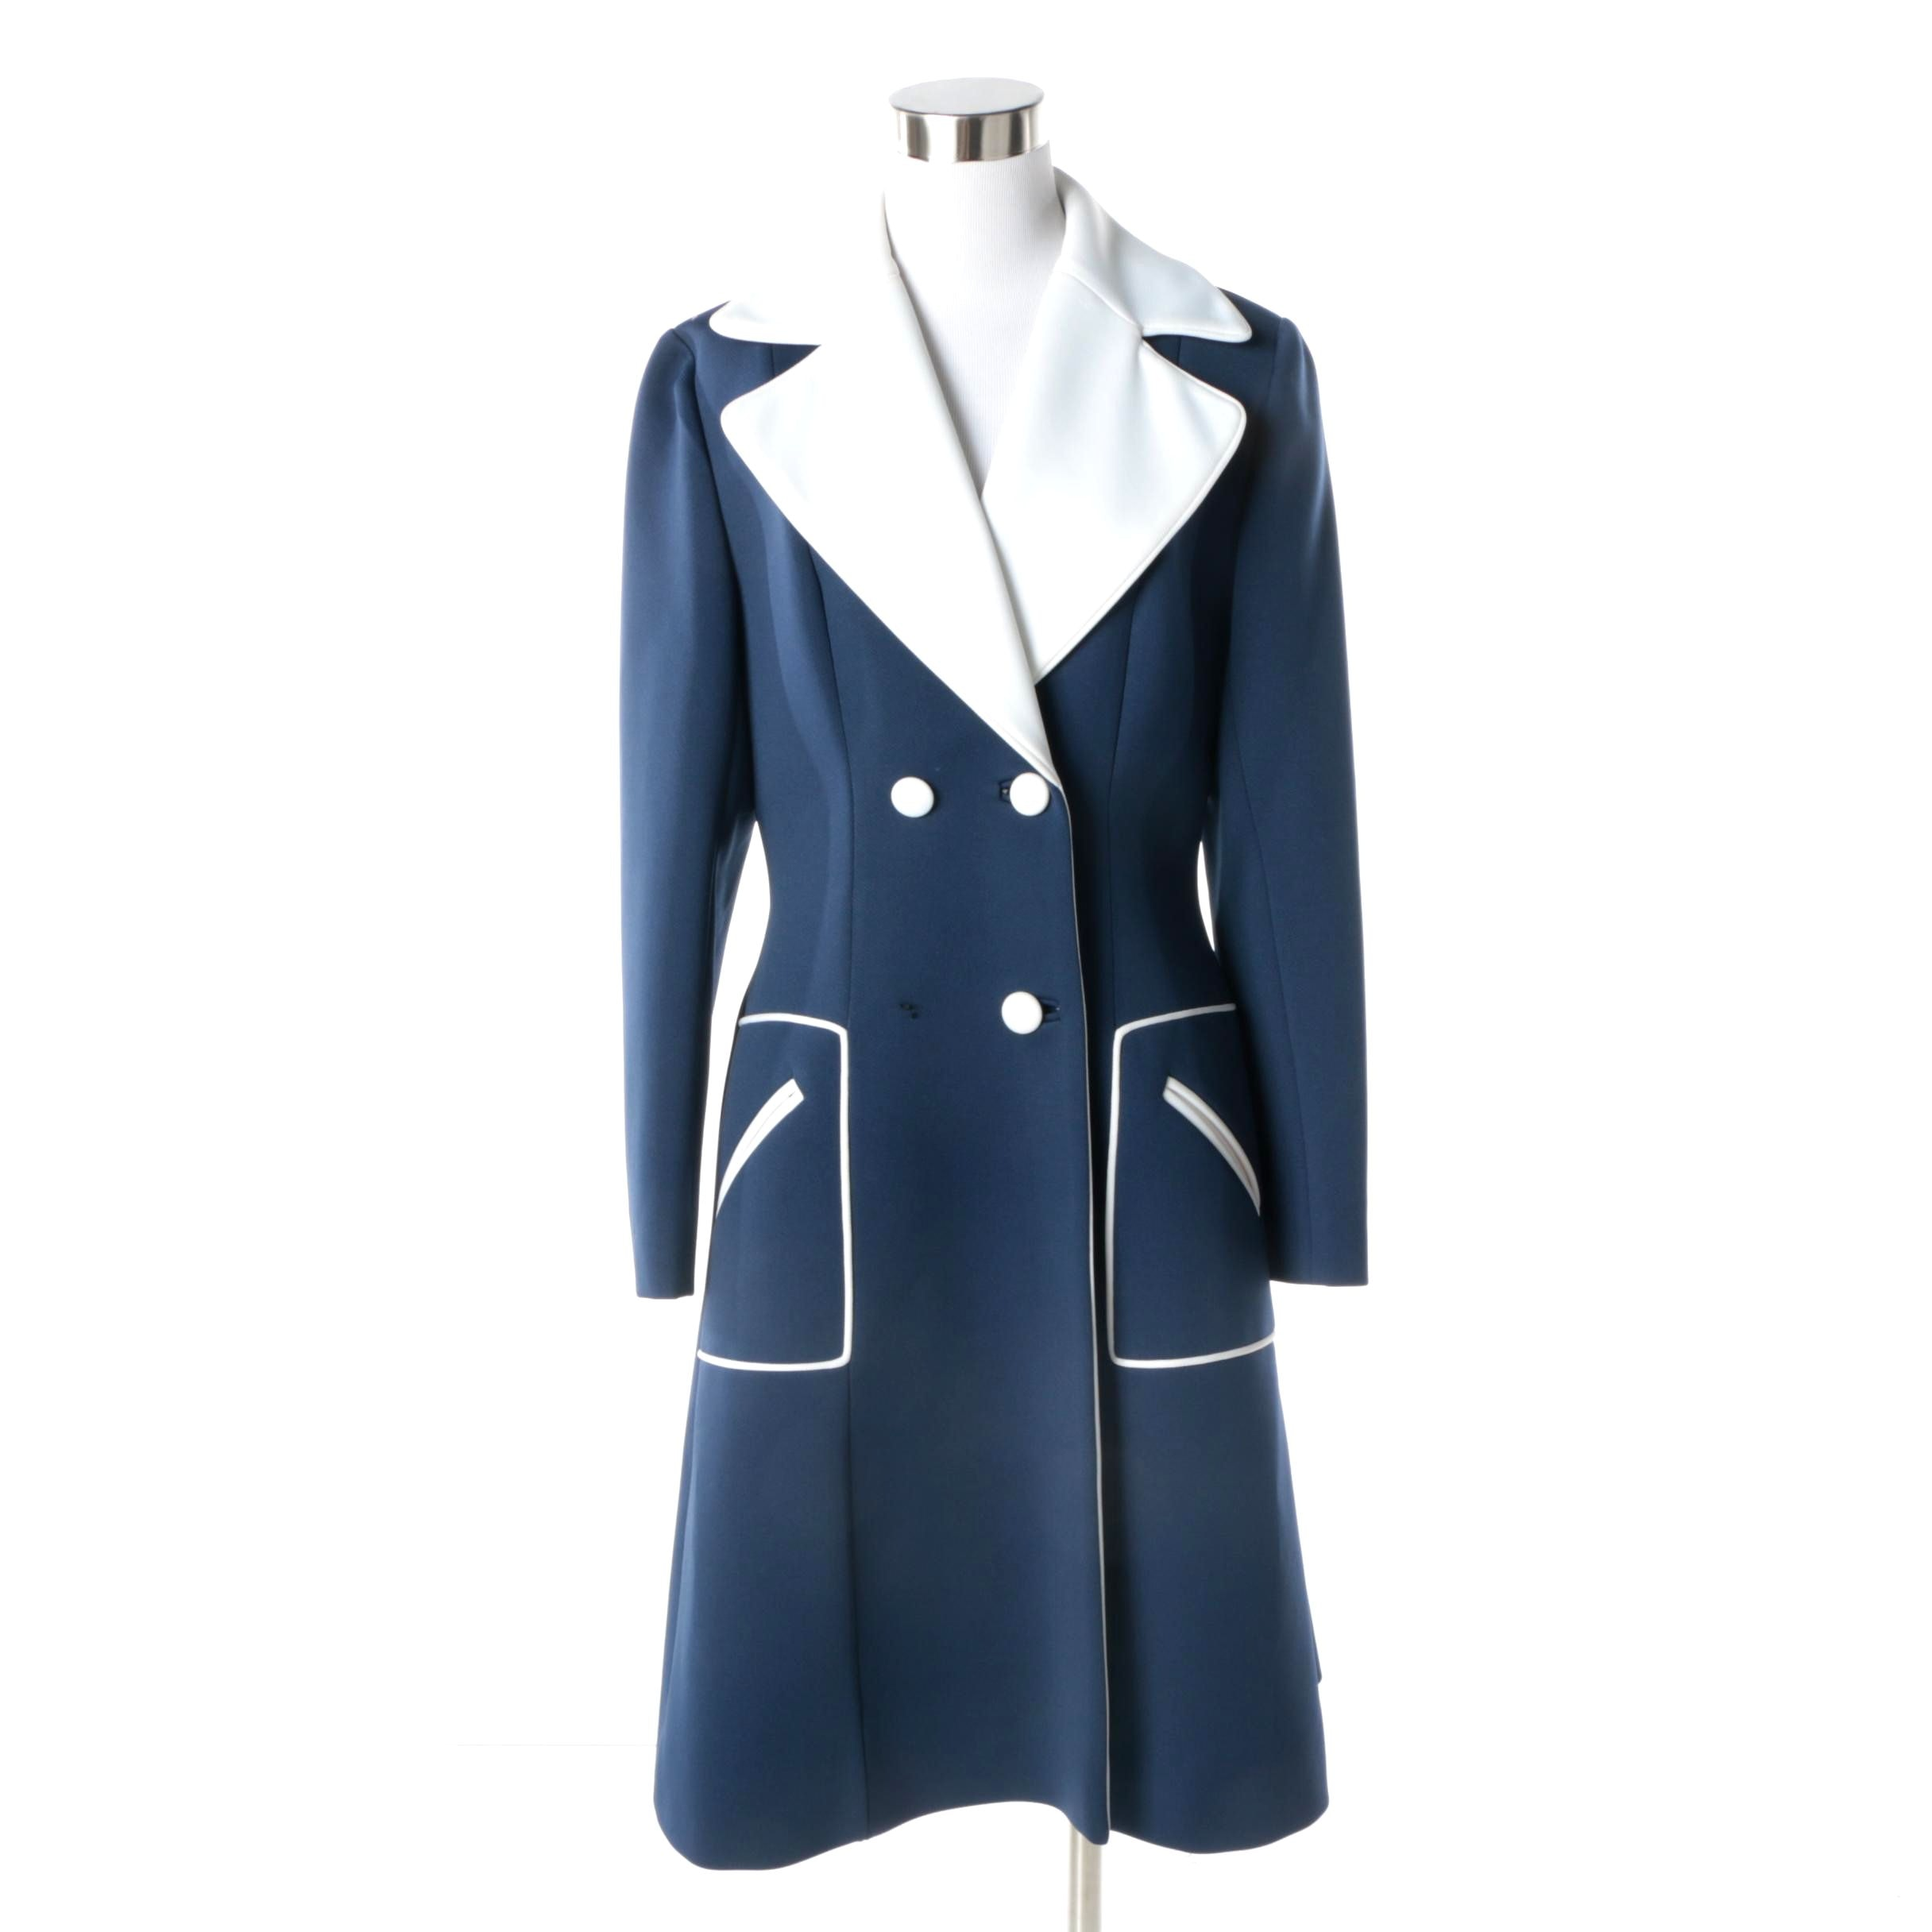 Women's Circa 1960s Vintage Lilli Ann Navy and White Double-Breasted Coat